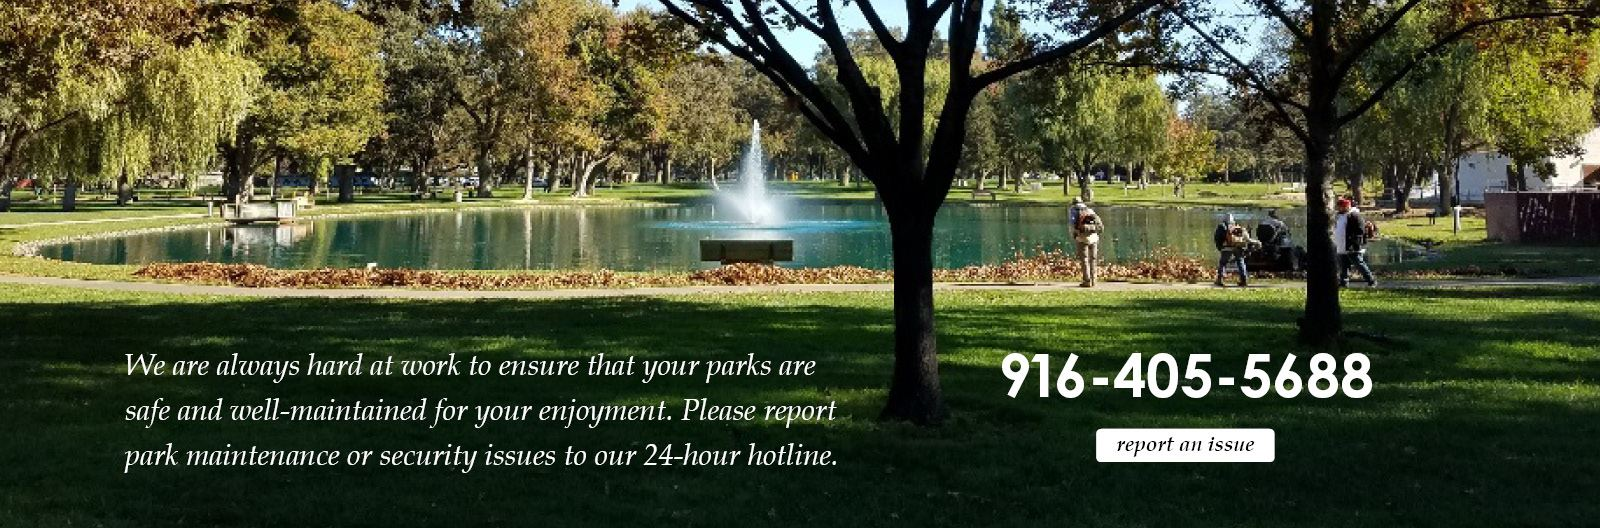 Report a Park Maintenance Issue to our hotline